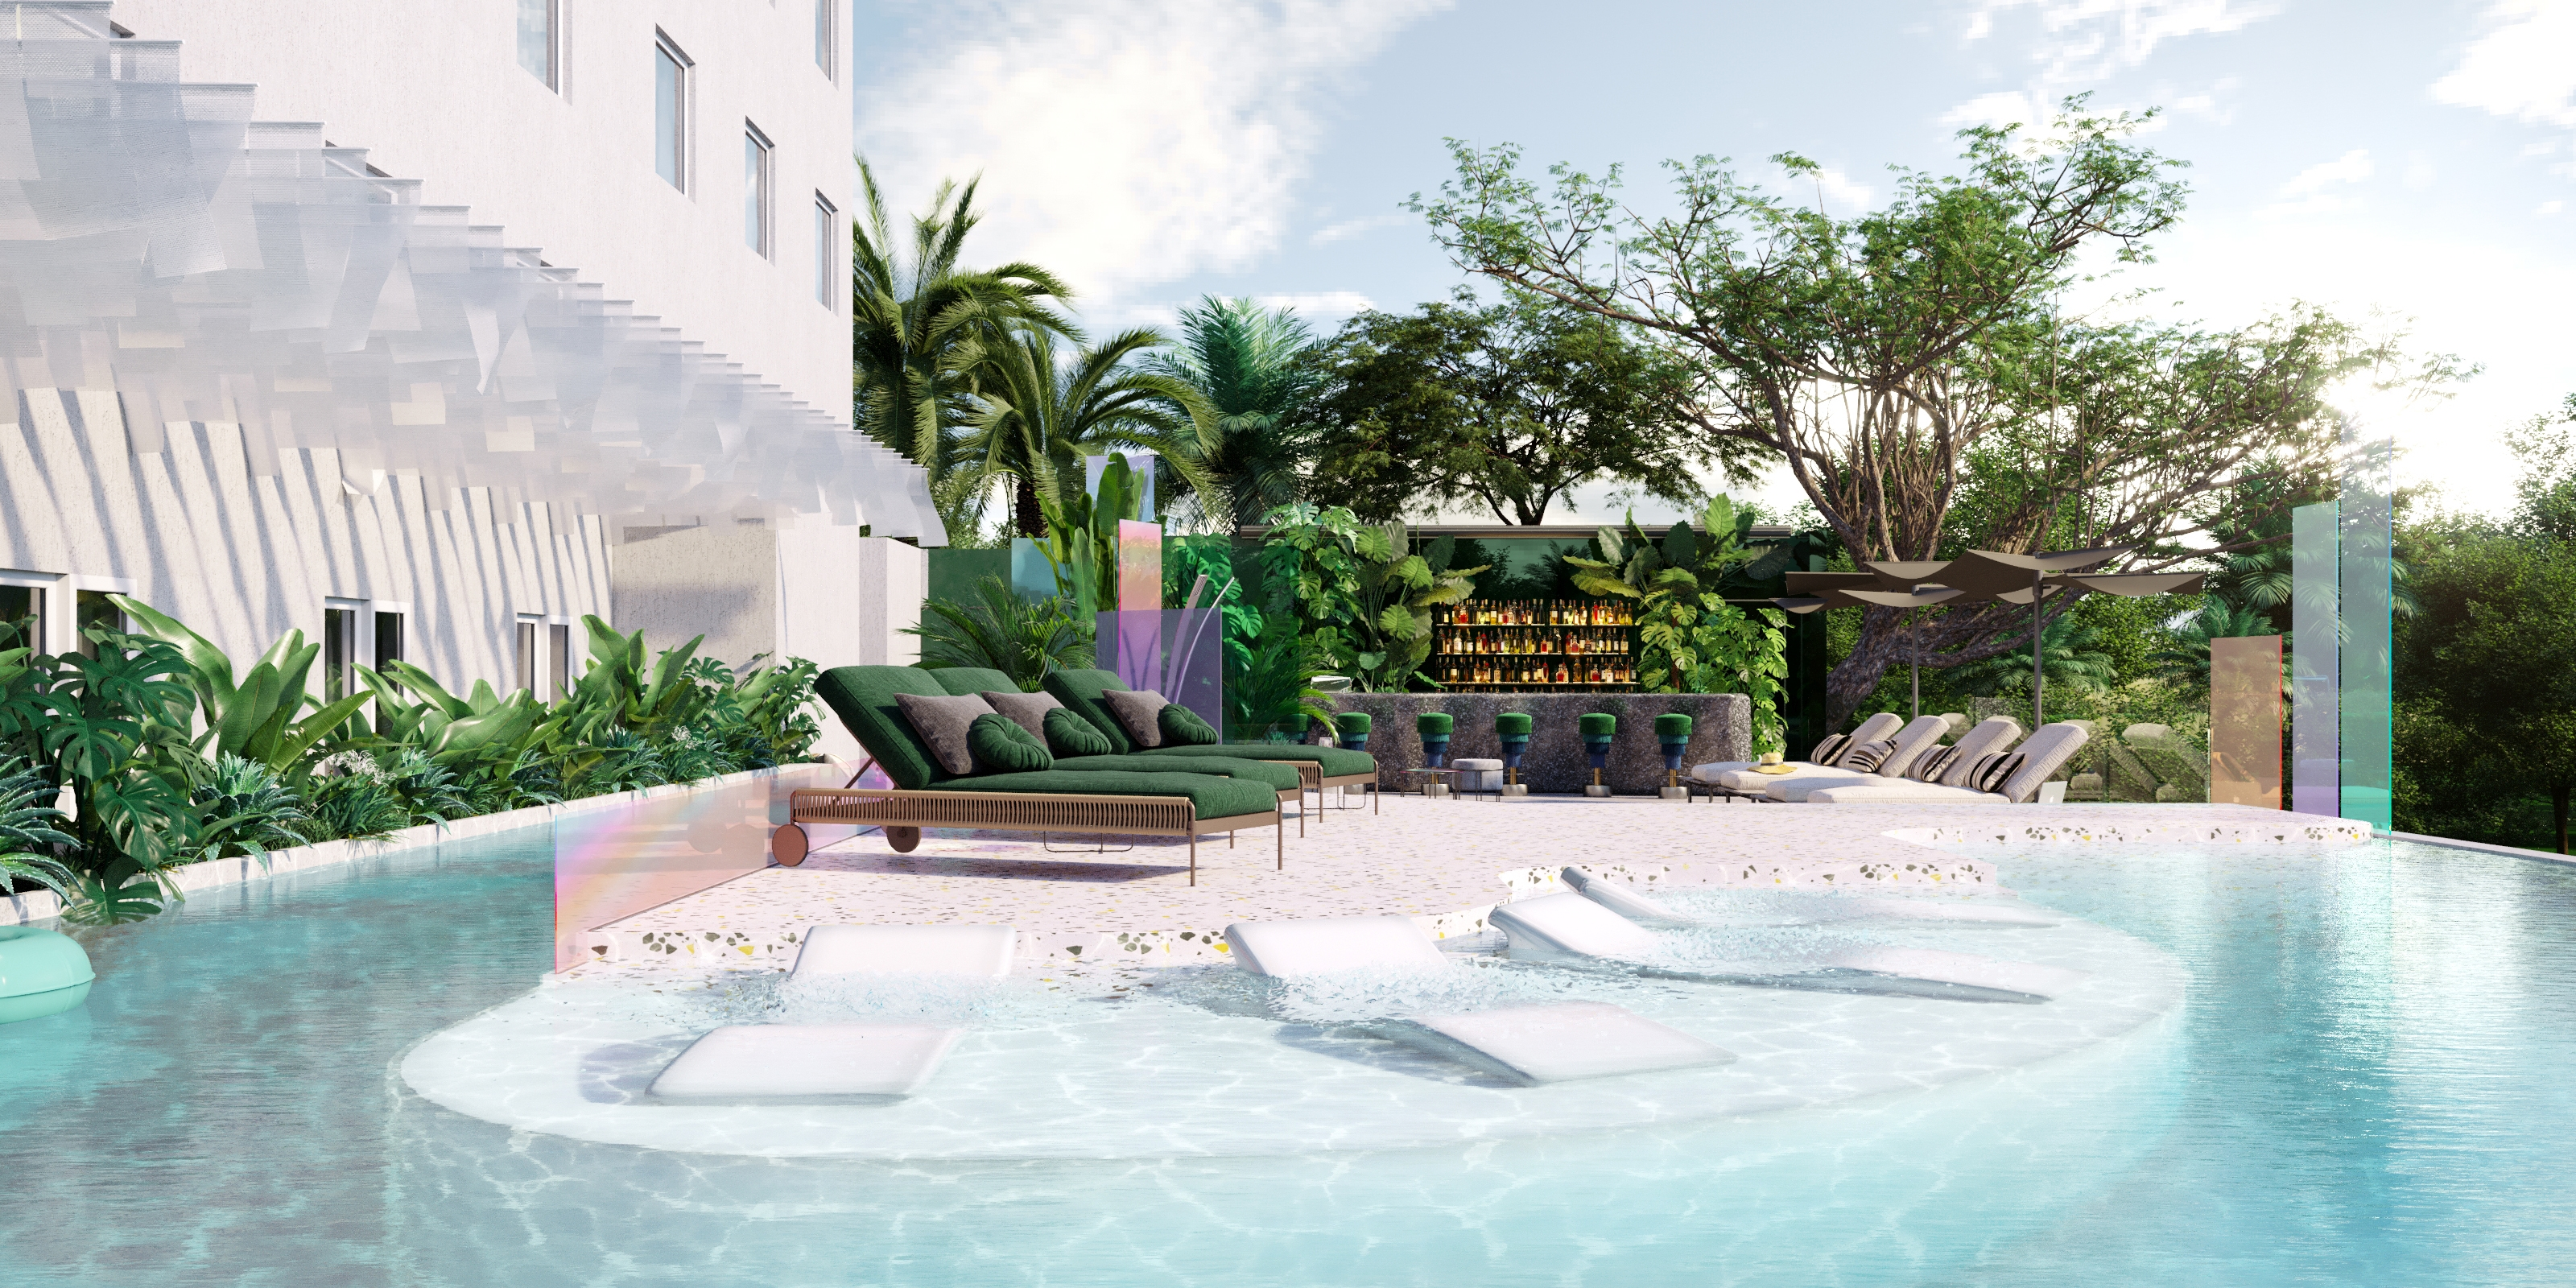 Group focus: Accor's East Africa expansion gains momentum [Infographic]